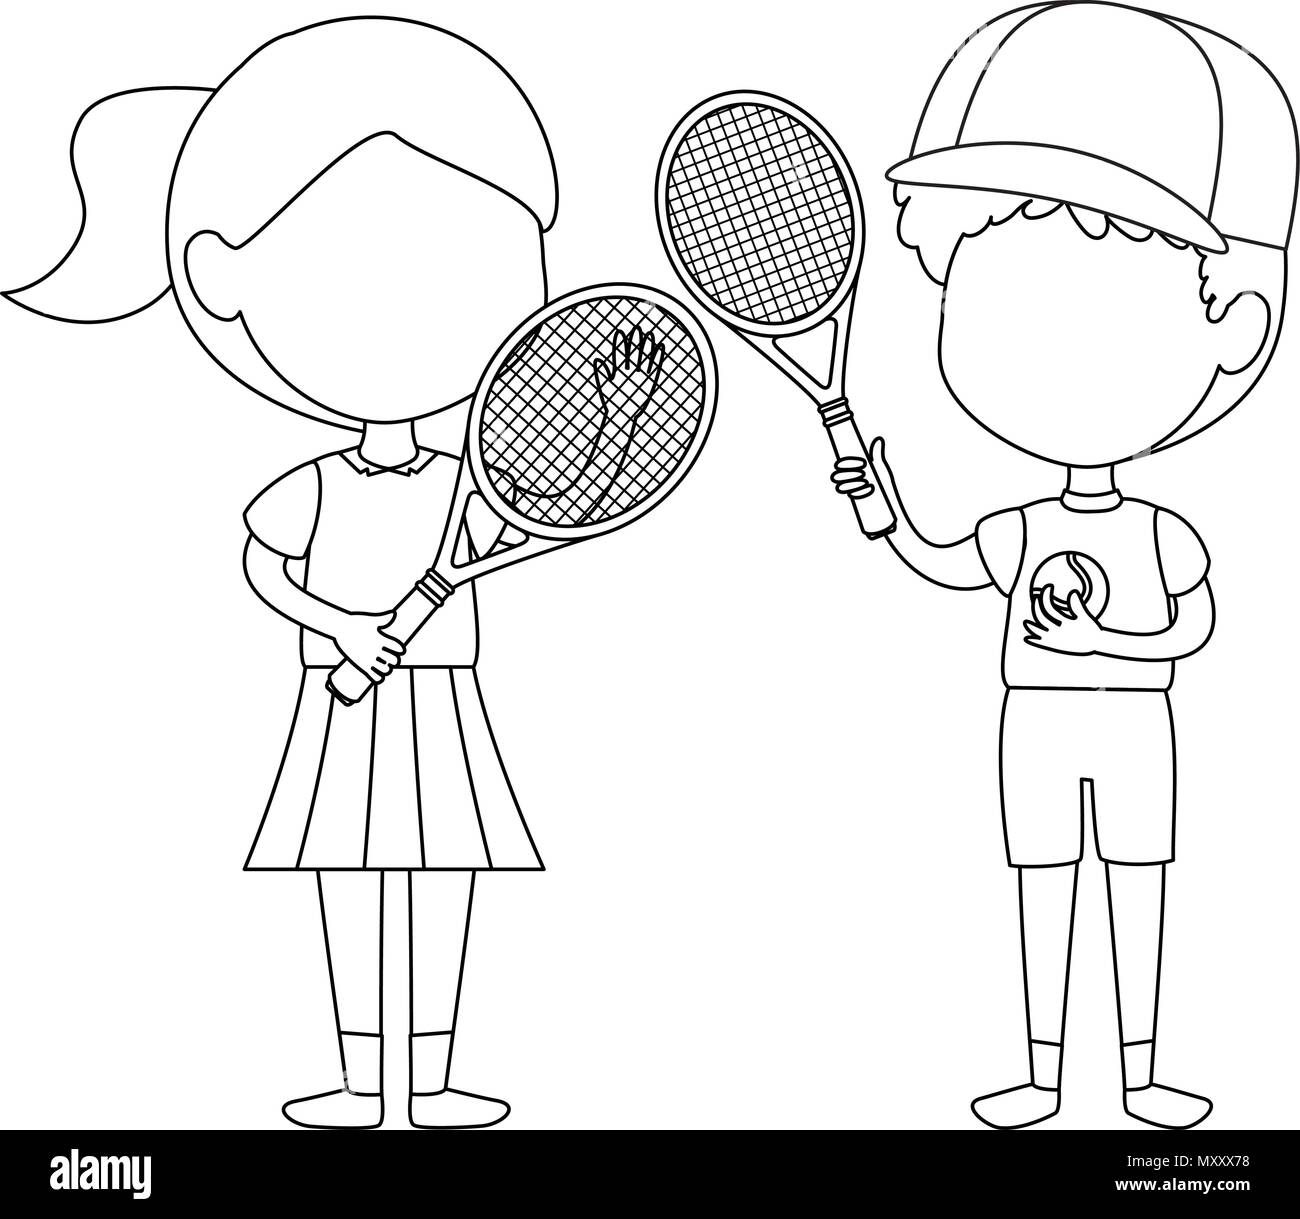 child playing tennis cut out stock images pictures alamy Ping Pong Cartoon Stick little kids couple playing tennis characters stock image